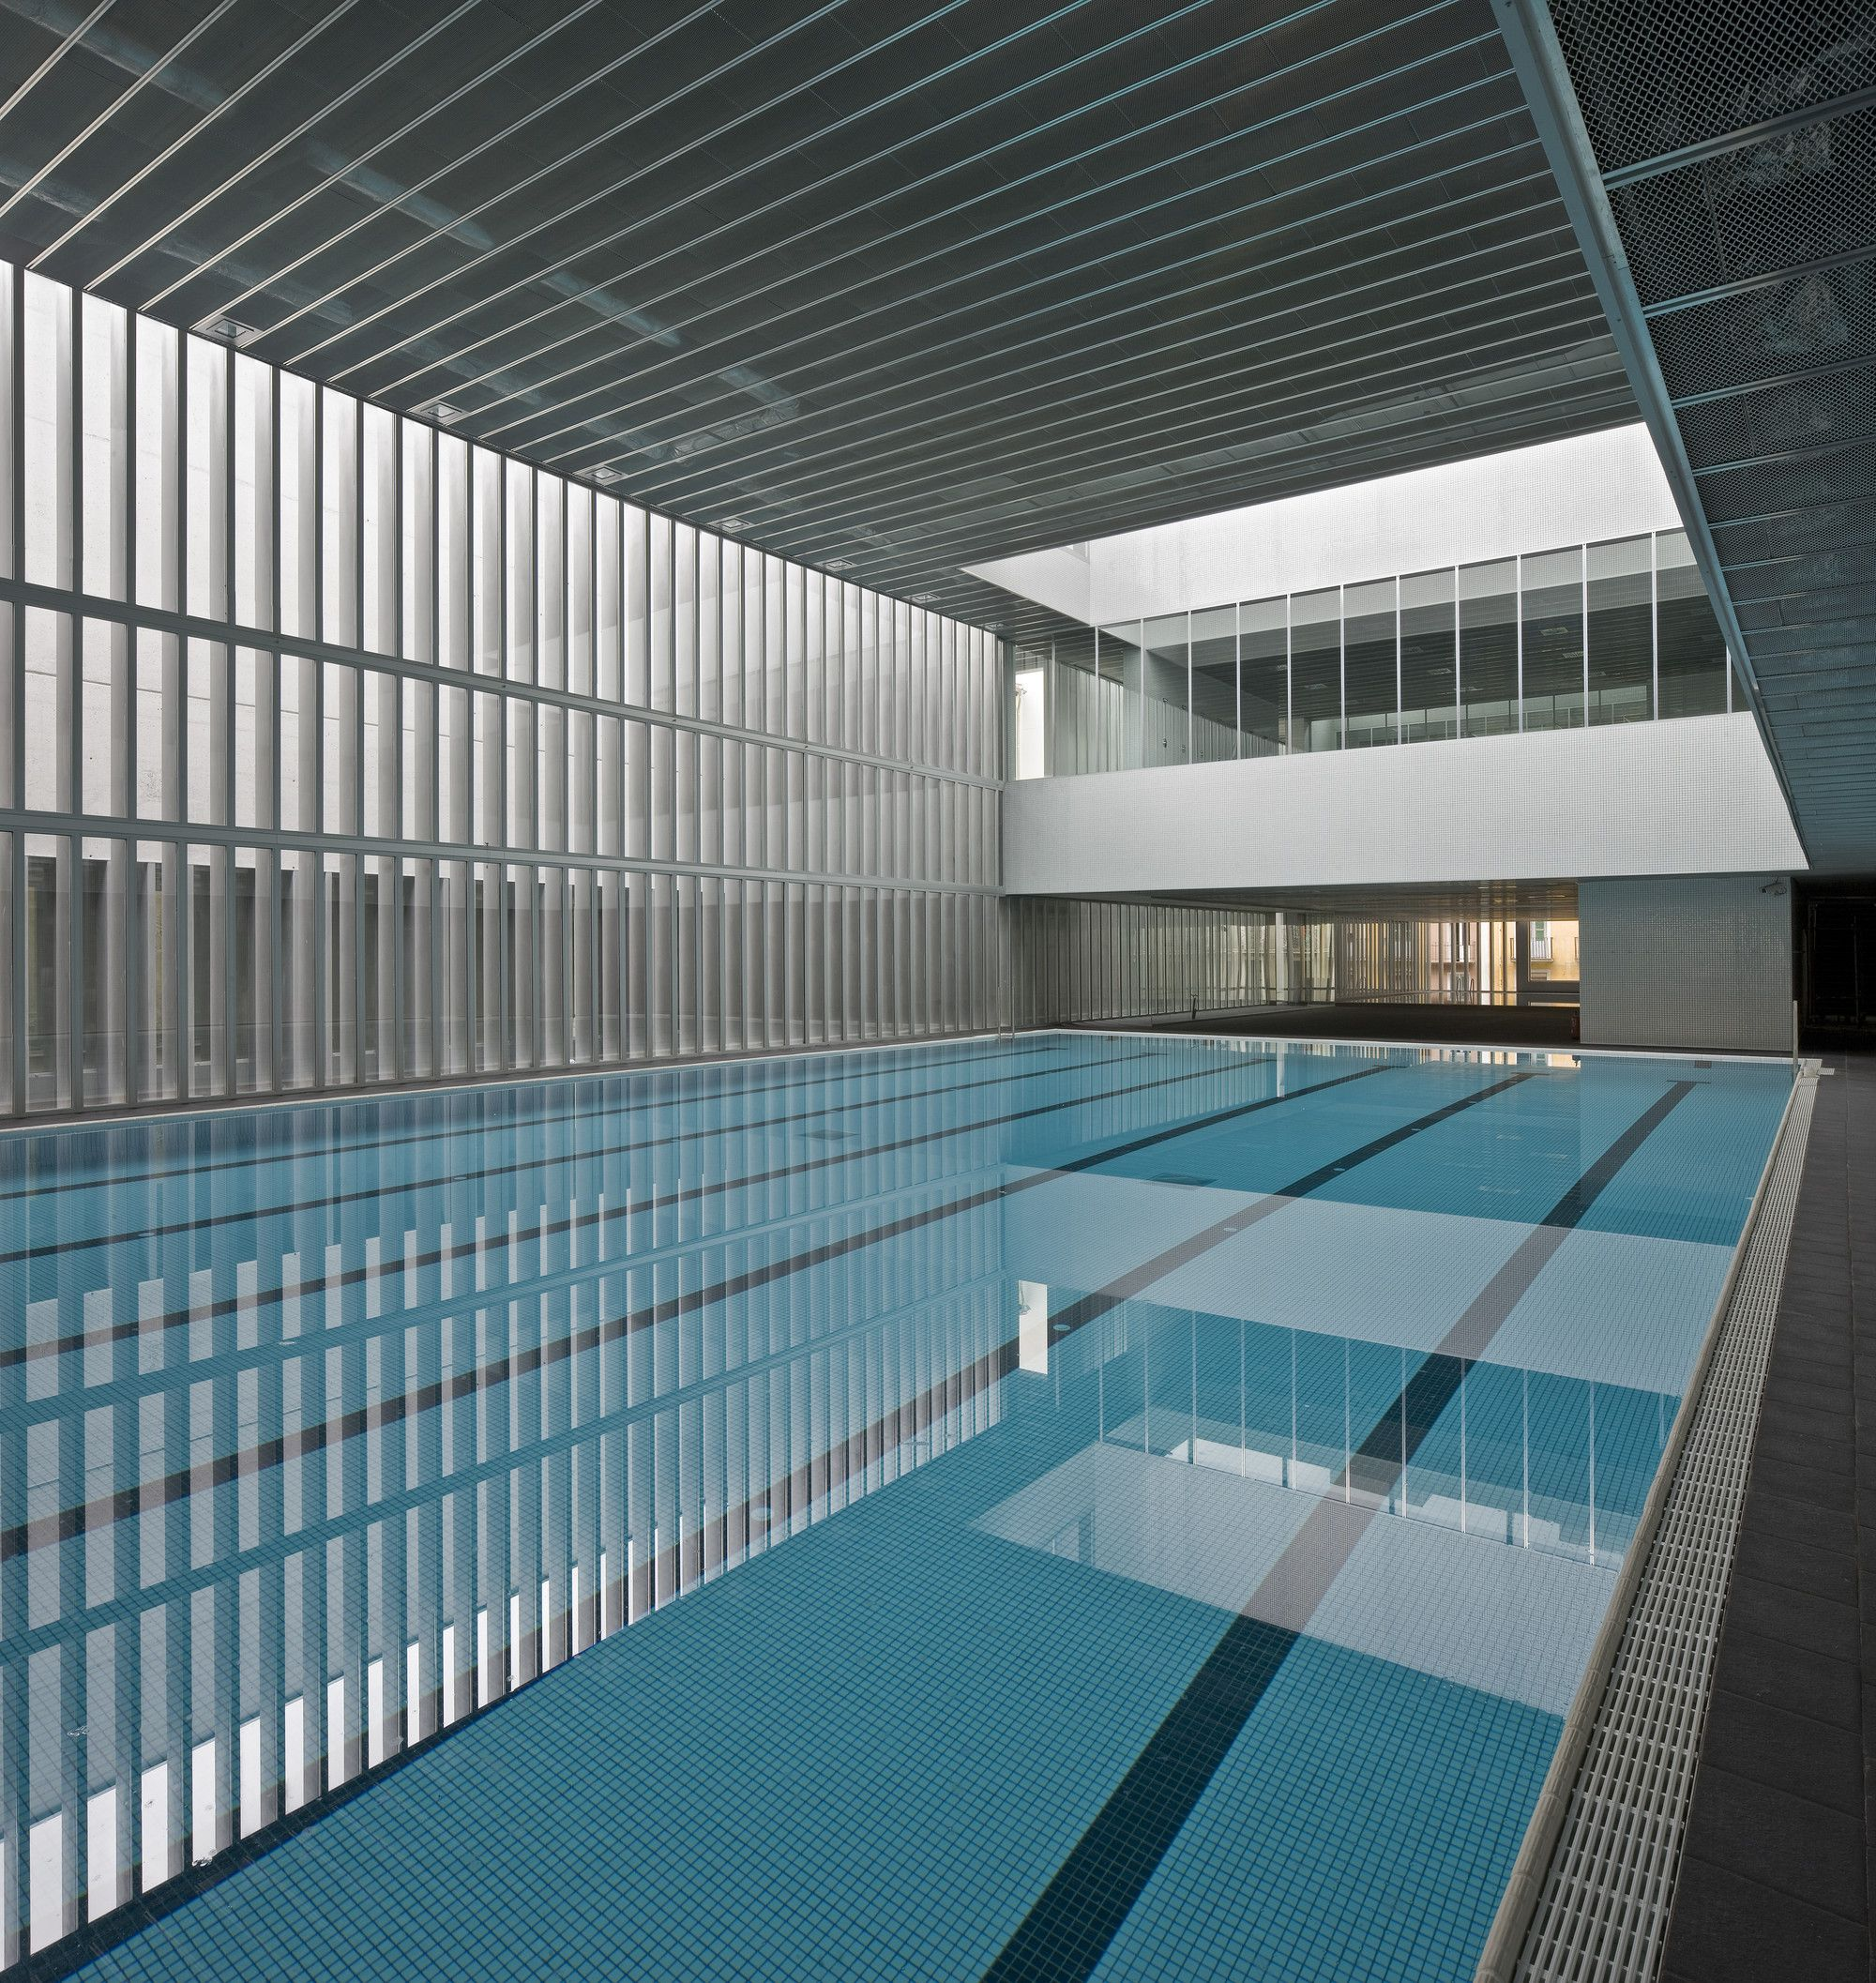 Sports And Leisure Centre Acxt - Earth, Swimming Pools And